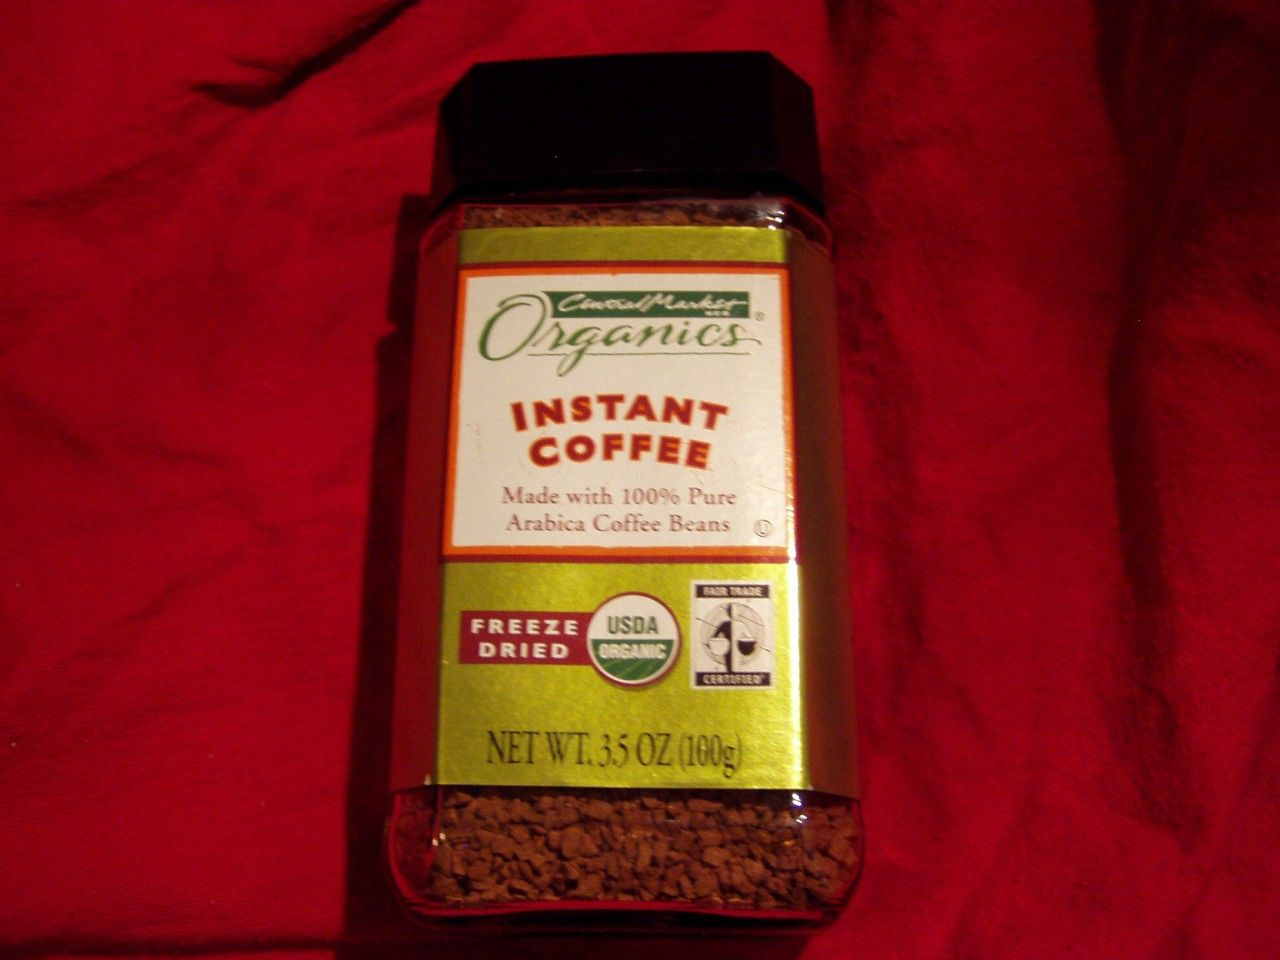 Central market organics instant coffee made from arabica